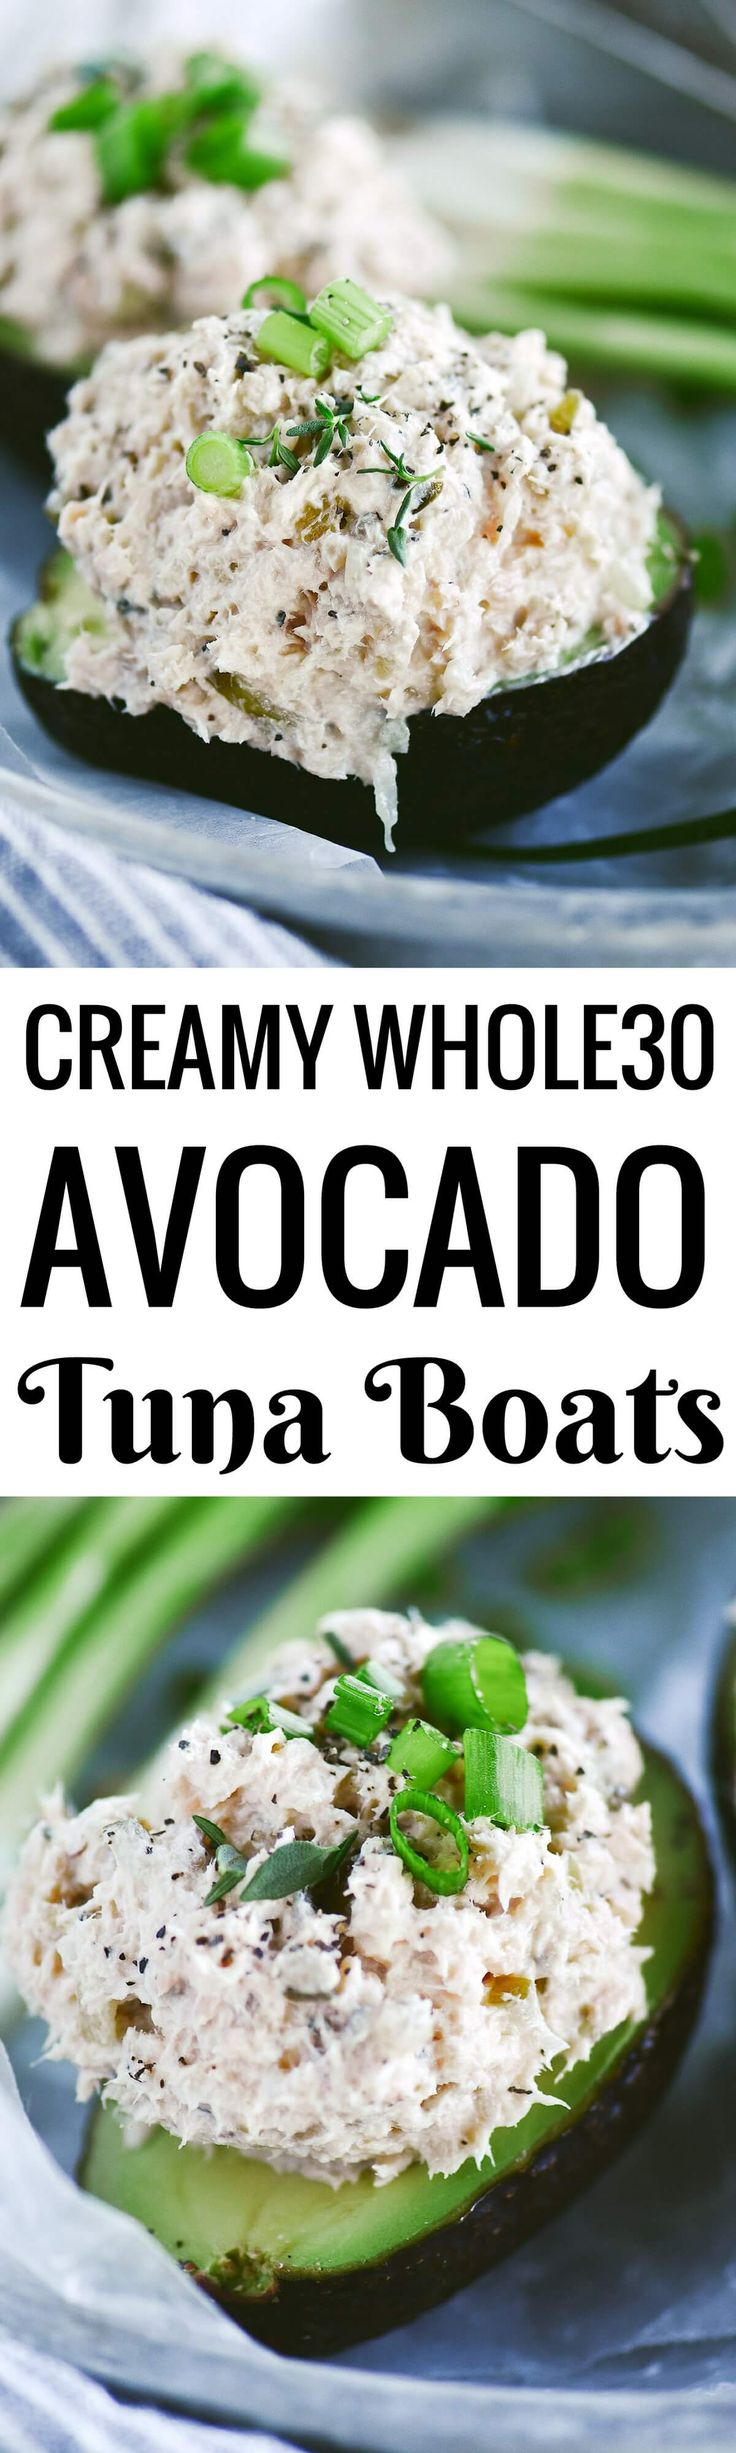 Ready for whole30 lunch in 5 minutes? Me too! Check out this recipe just for you. Creamy whole30 tuna avocado boats are topped with fresh herbs and are so healthy and easy! Whole30 lunch on the go. Whole30 meal ideas. whole30 meal plan. Easy whole30 dinne